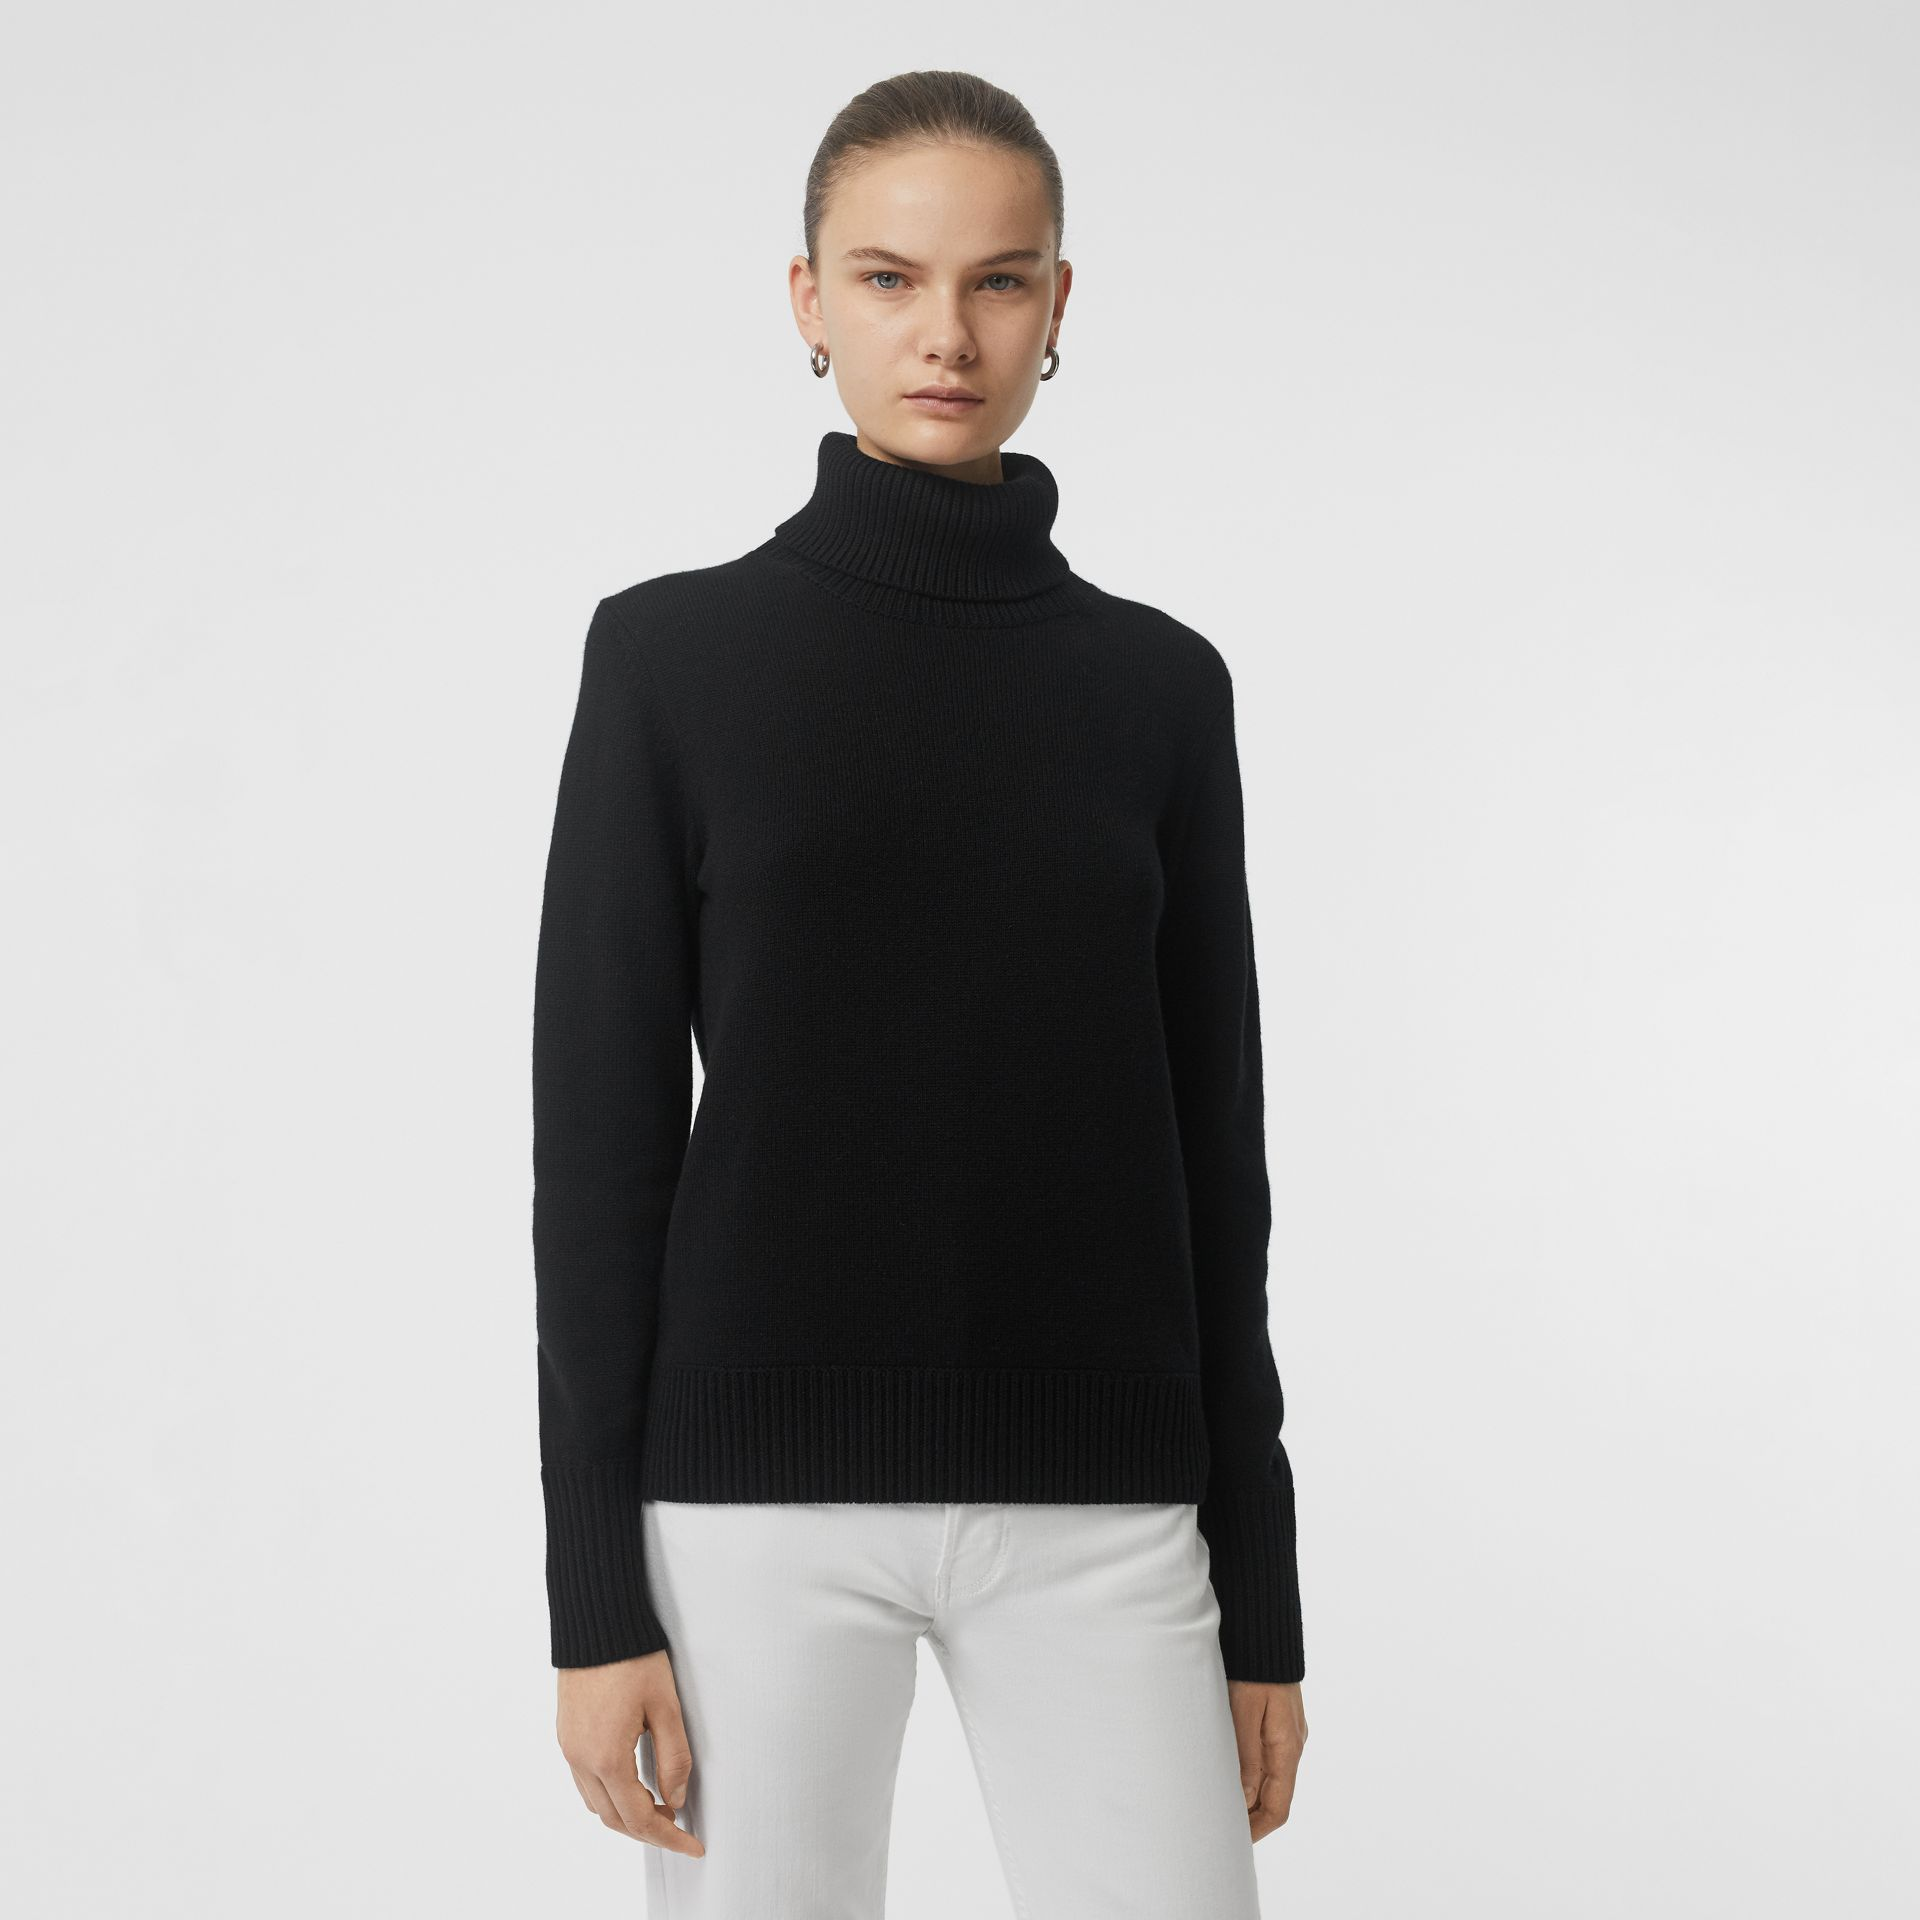 Embroidered Crest Cashmere Roll-neck Sweater in Black - Women | Burberry United Kingdom - gallery image 0